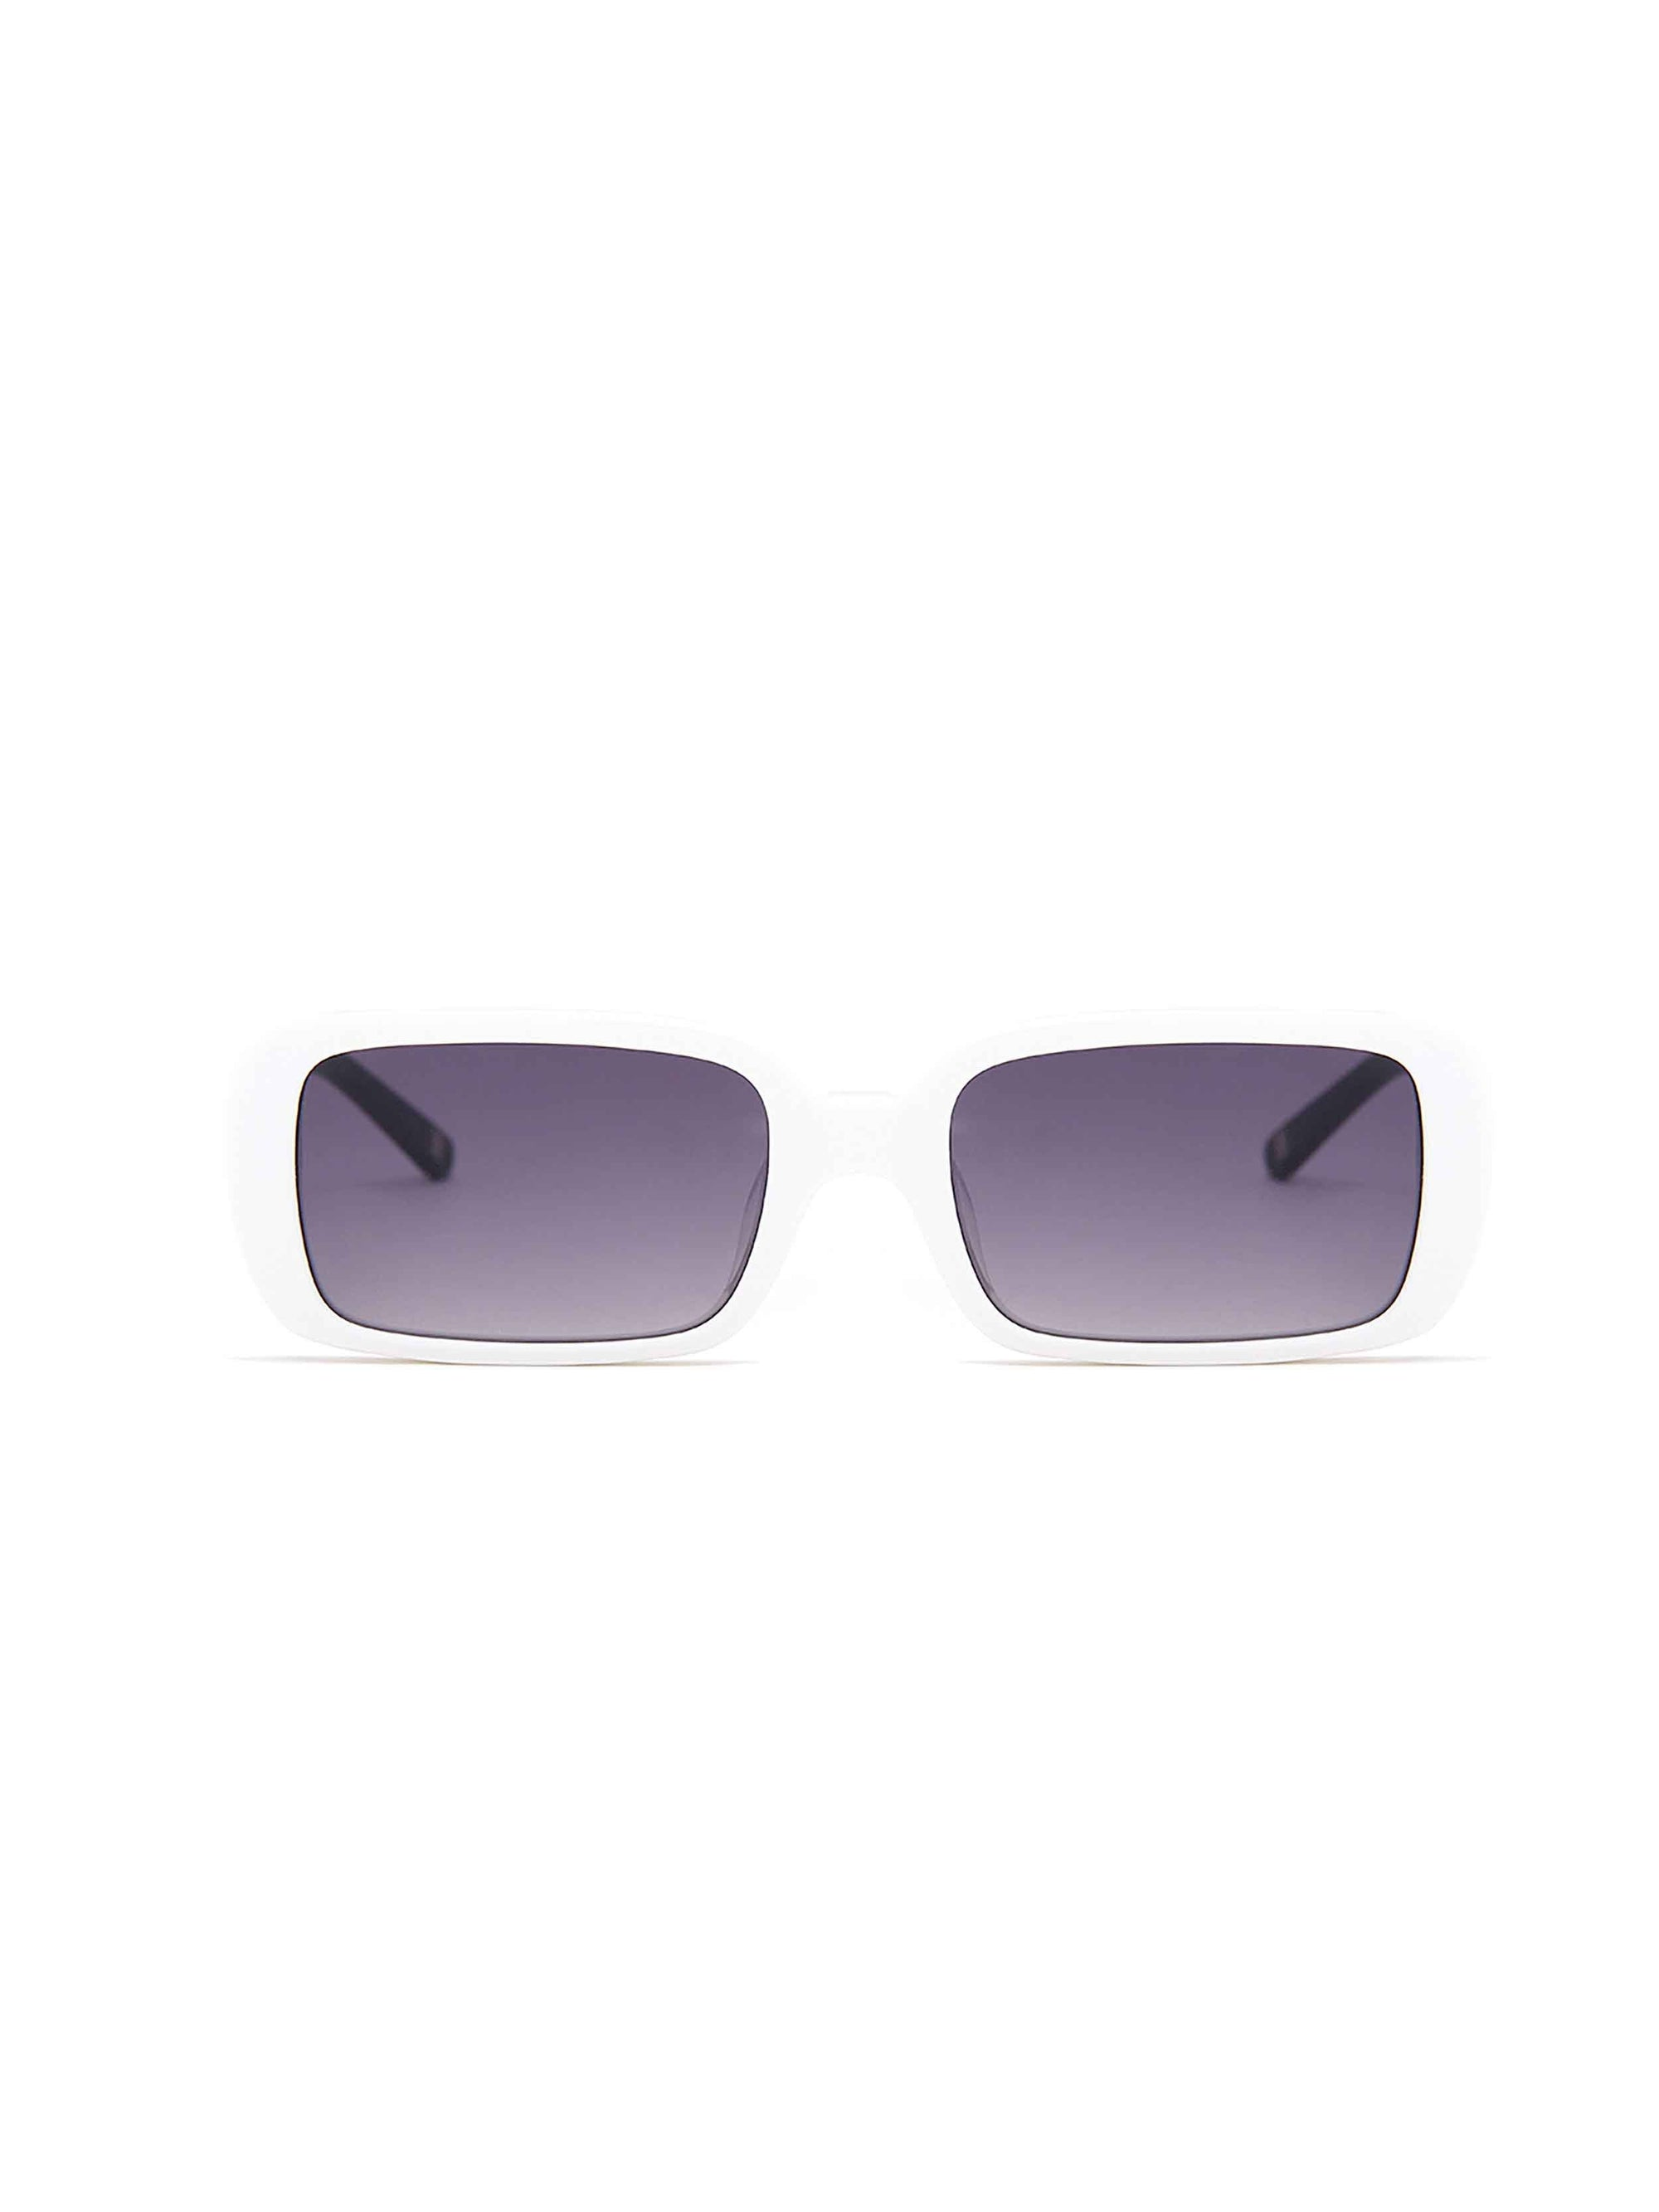 Lentes Carolina Lemke CL7707 02